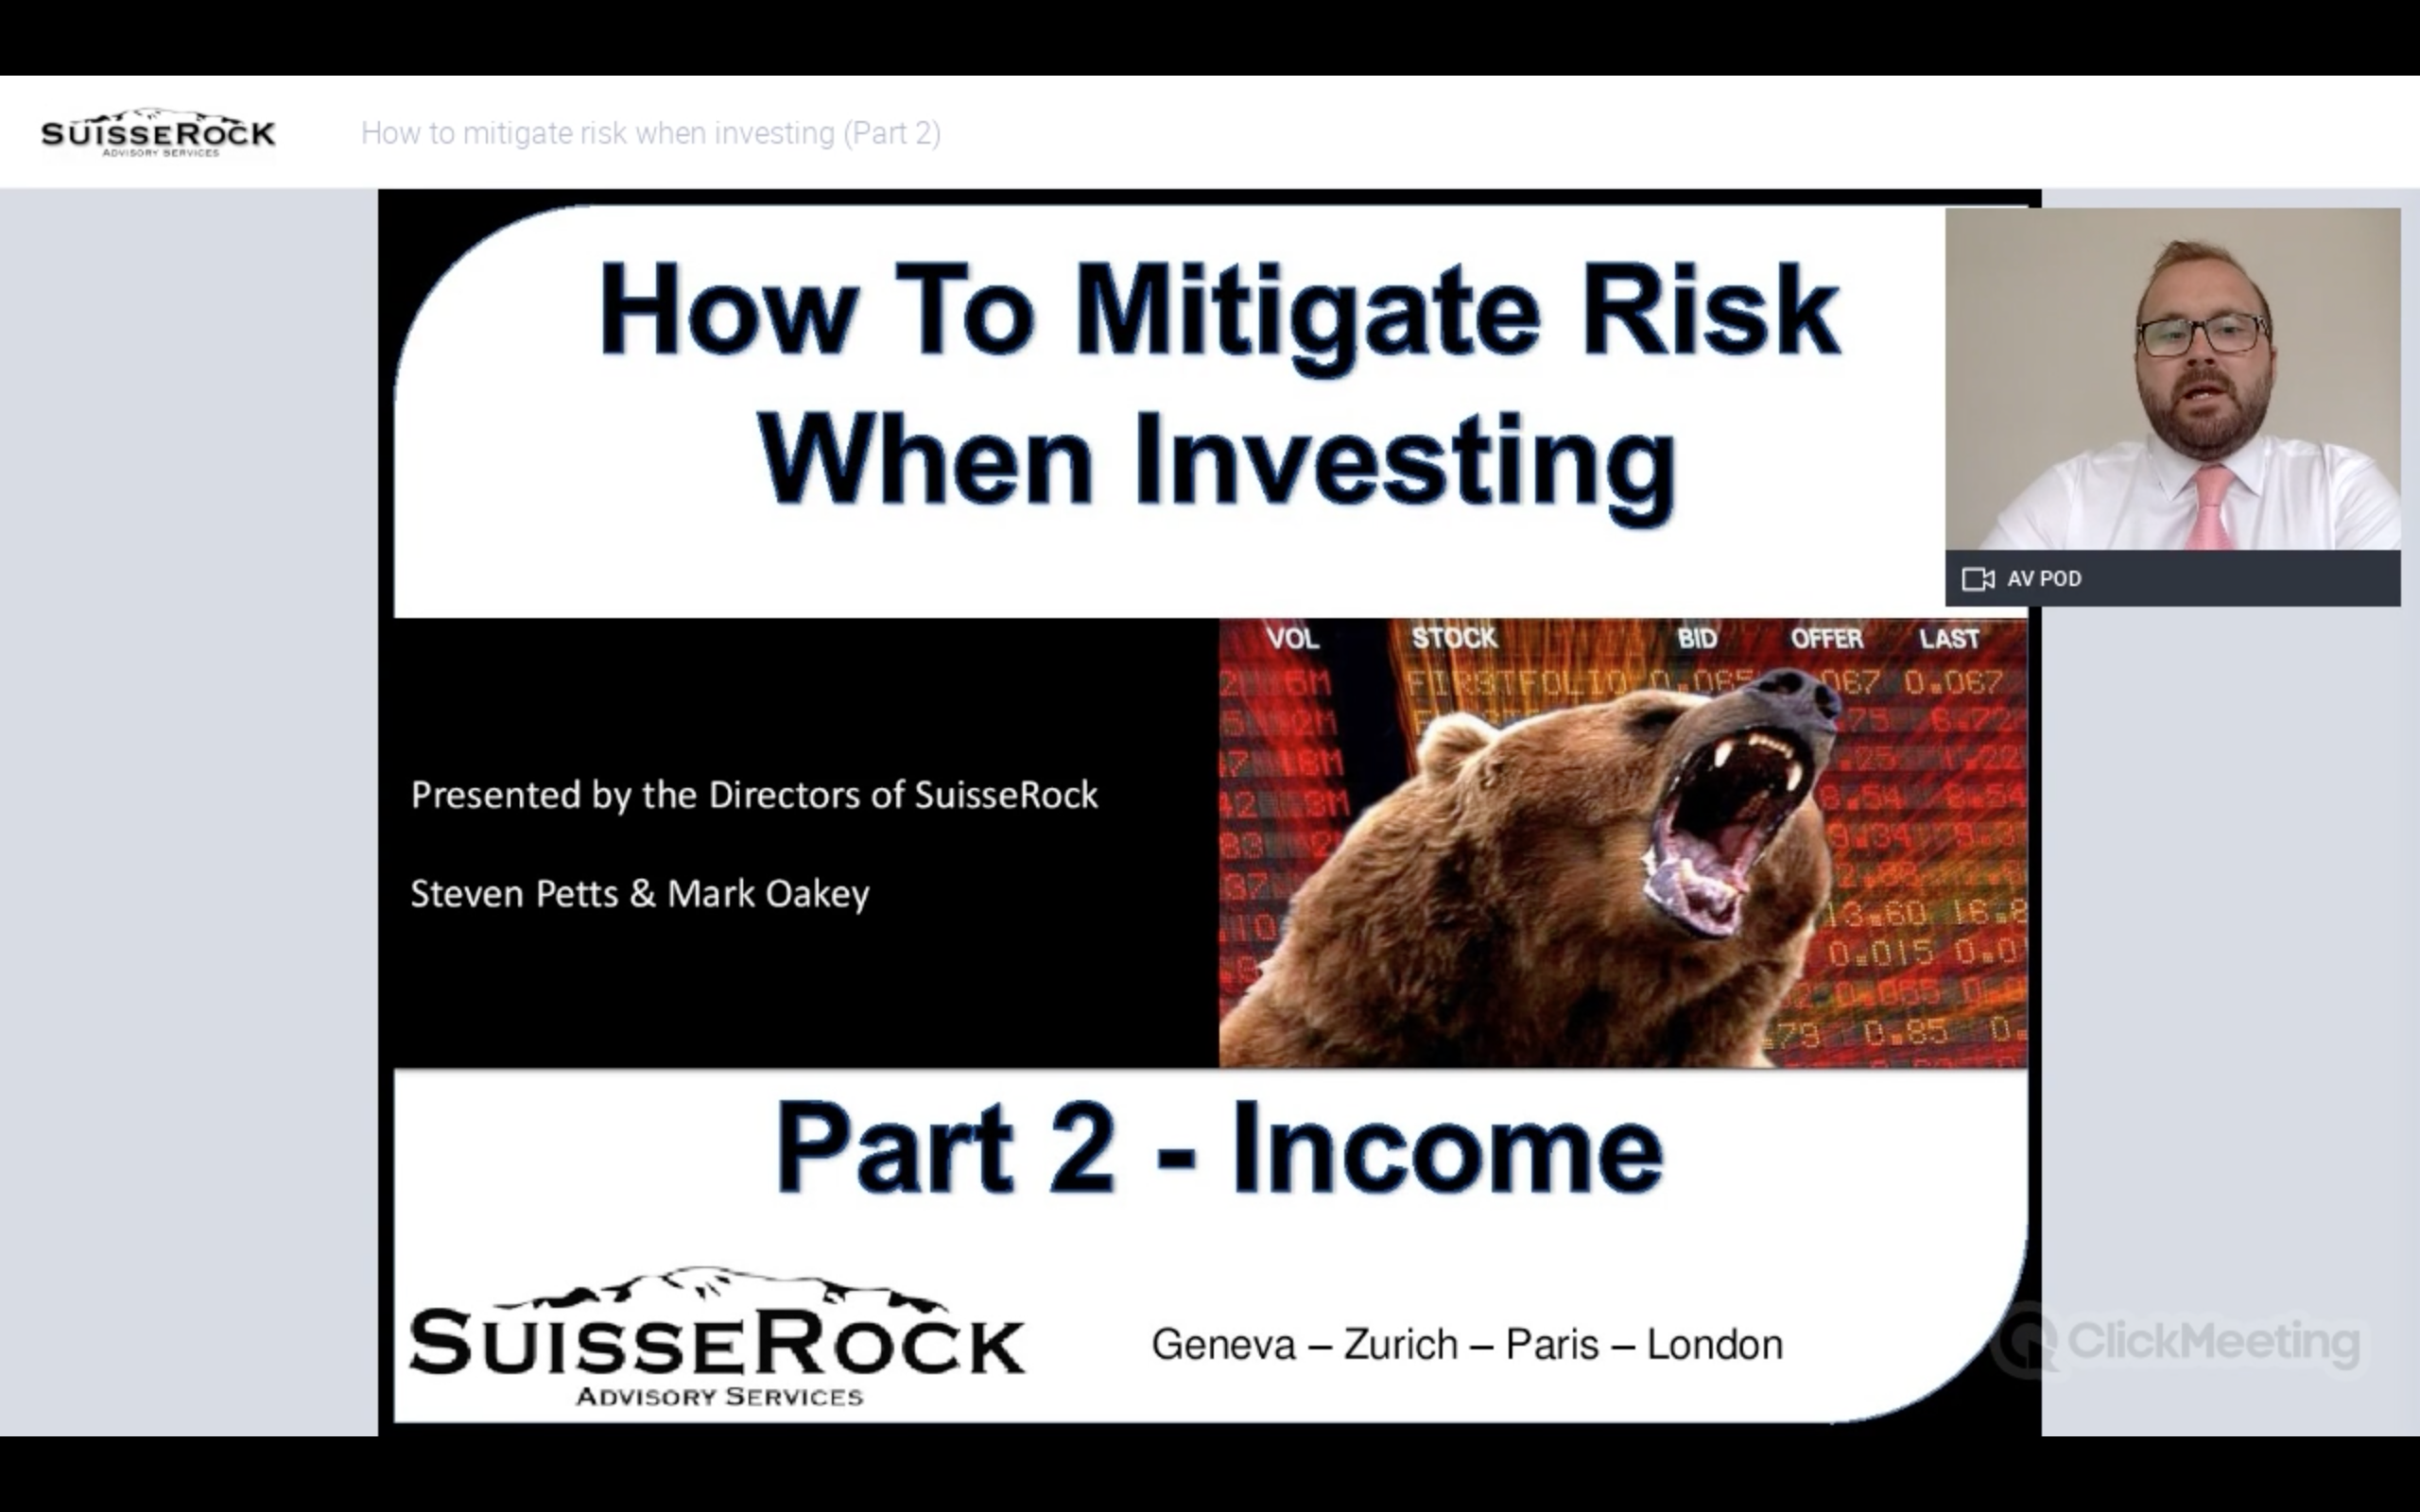 How to mitigate risk